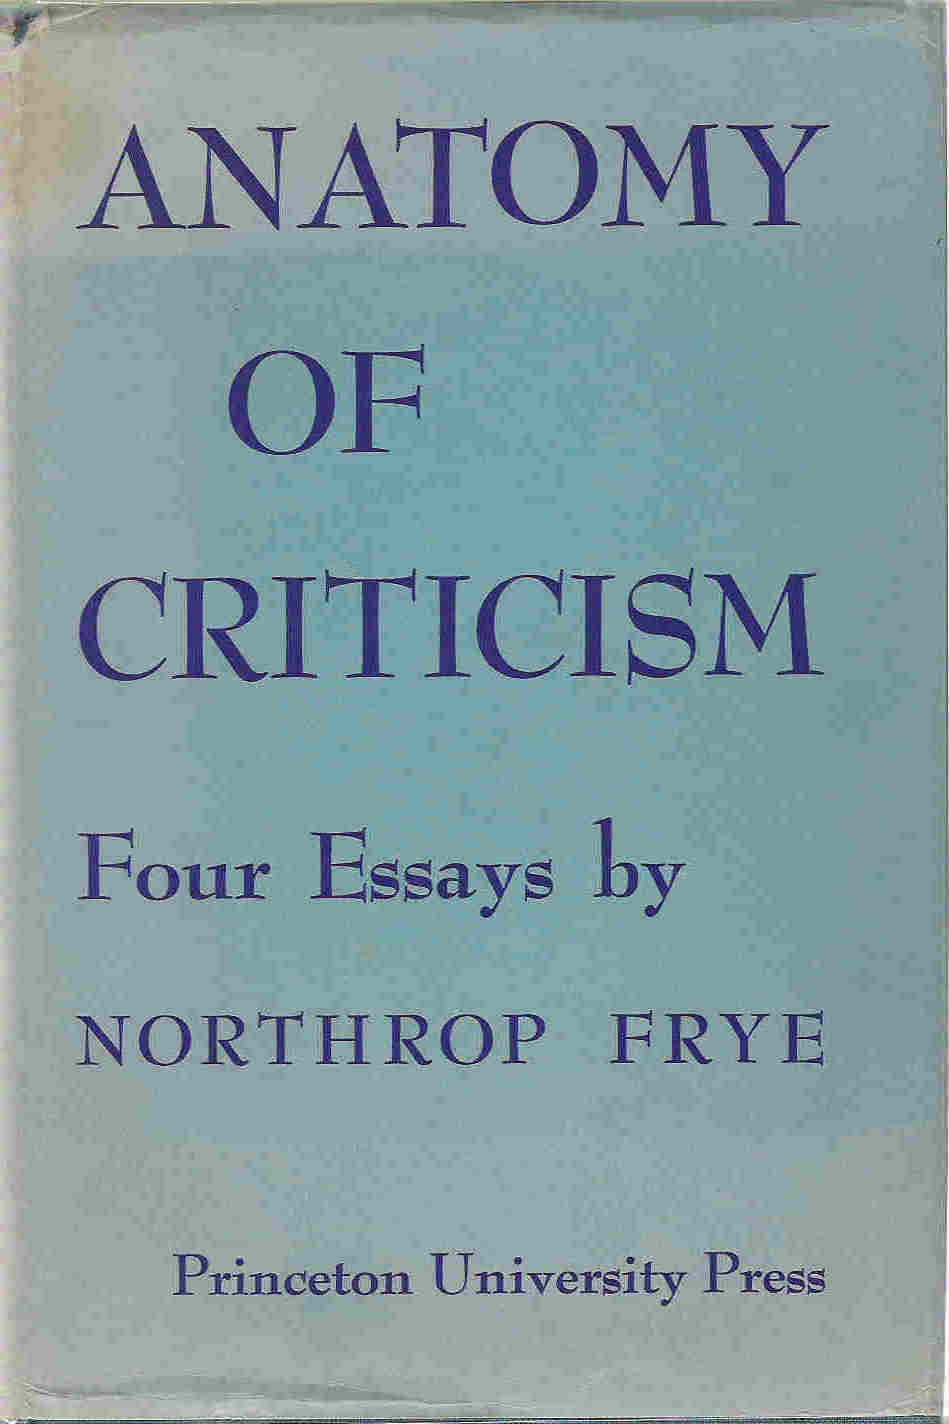 Anatomy of Criticism | The Educated Imagination